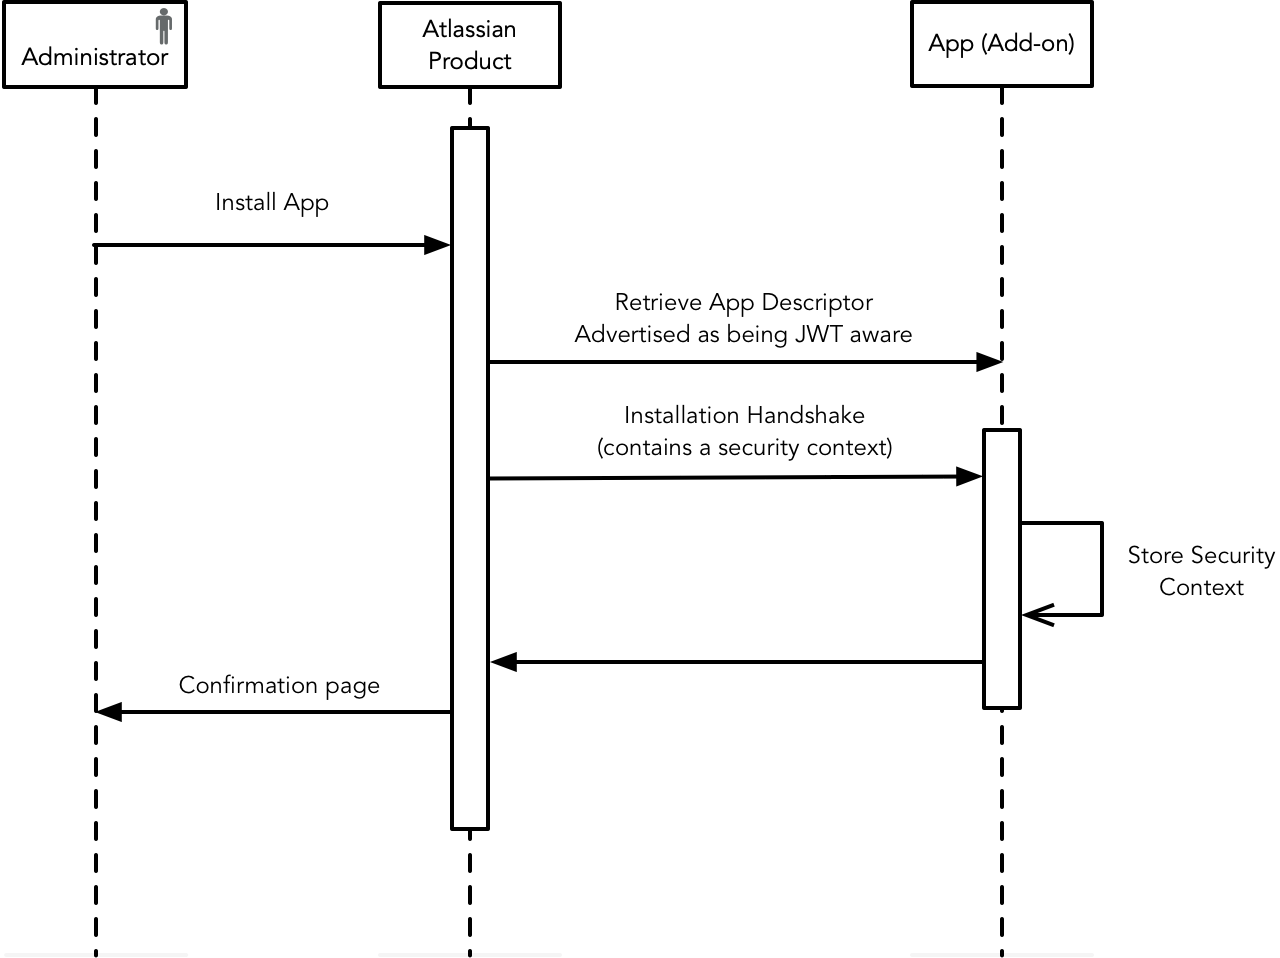 Authentication for Connect apps